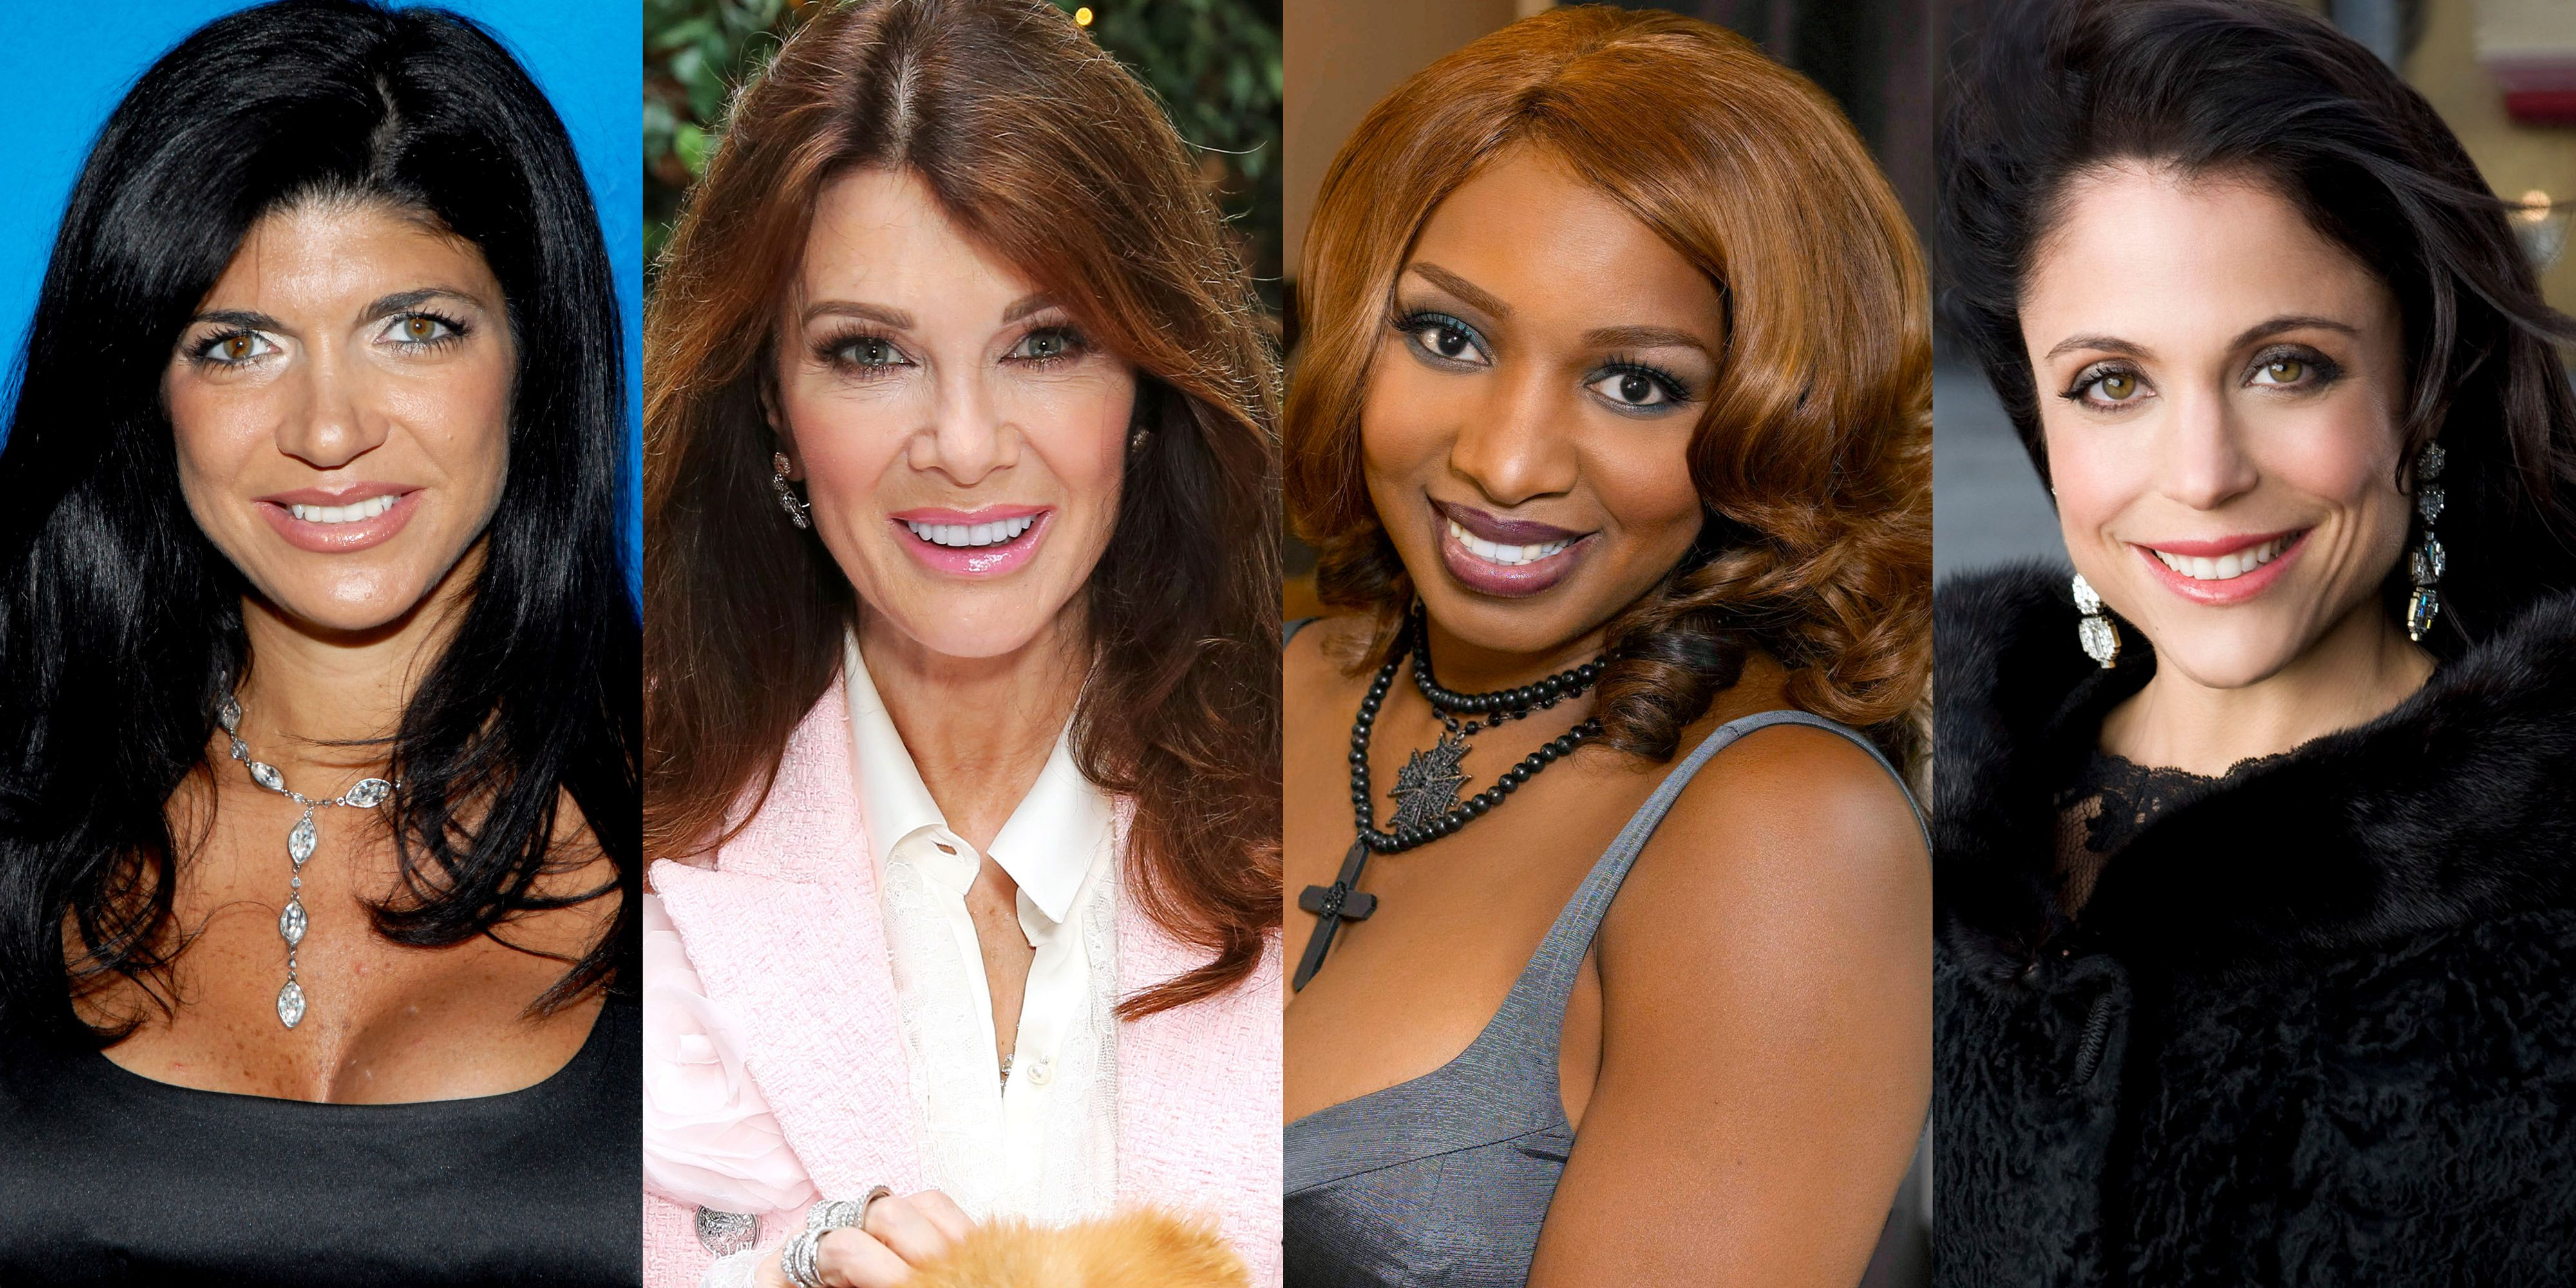 The Real Housewives Cast Members Pictures Then And Now